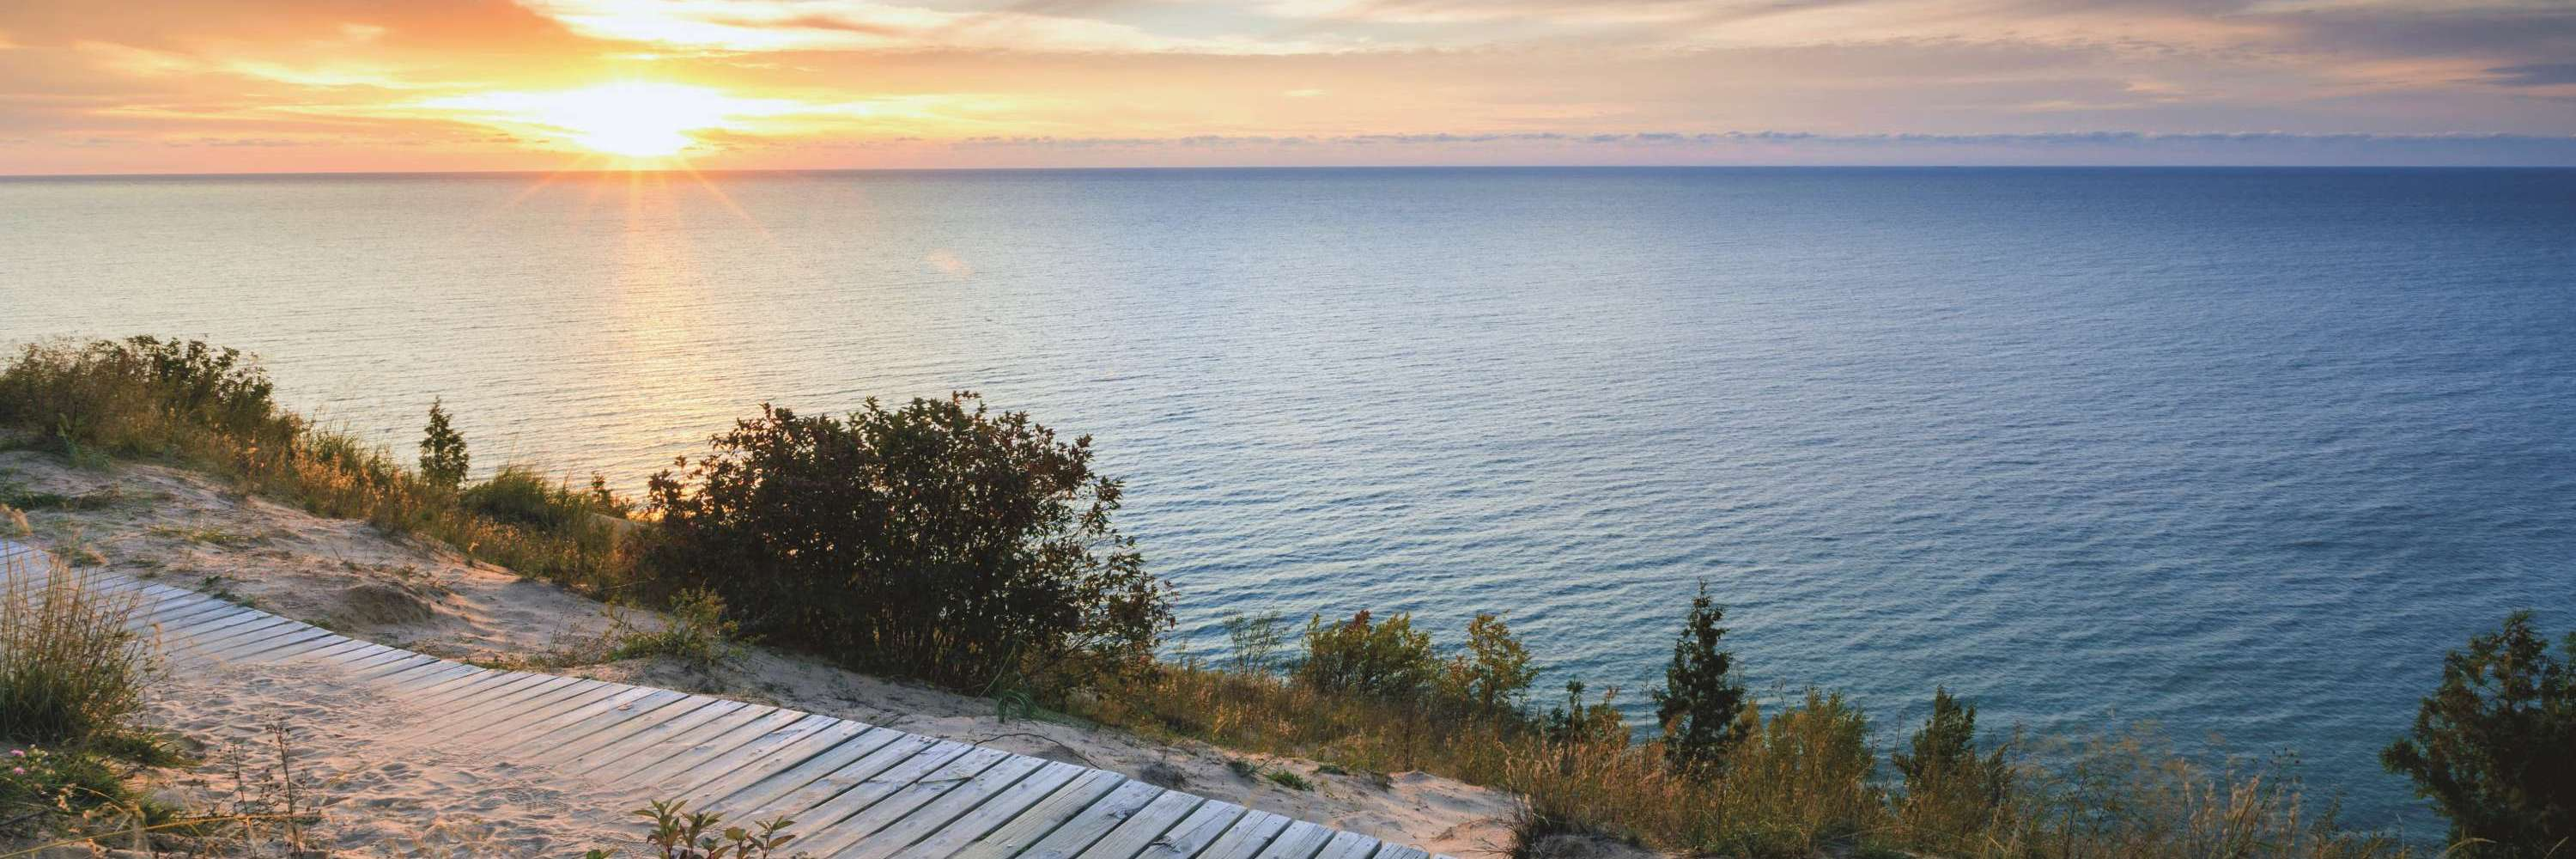 Boardwalk on dunes over Great Lakes